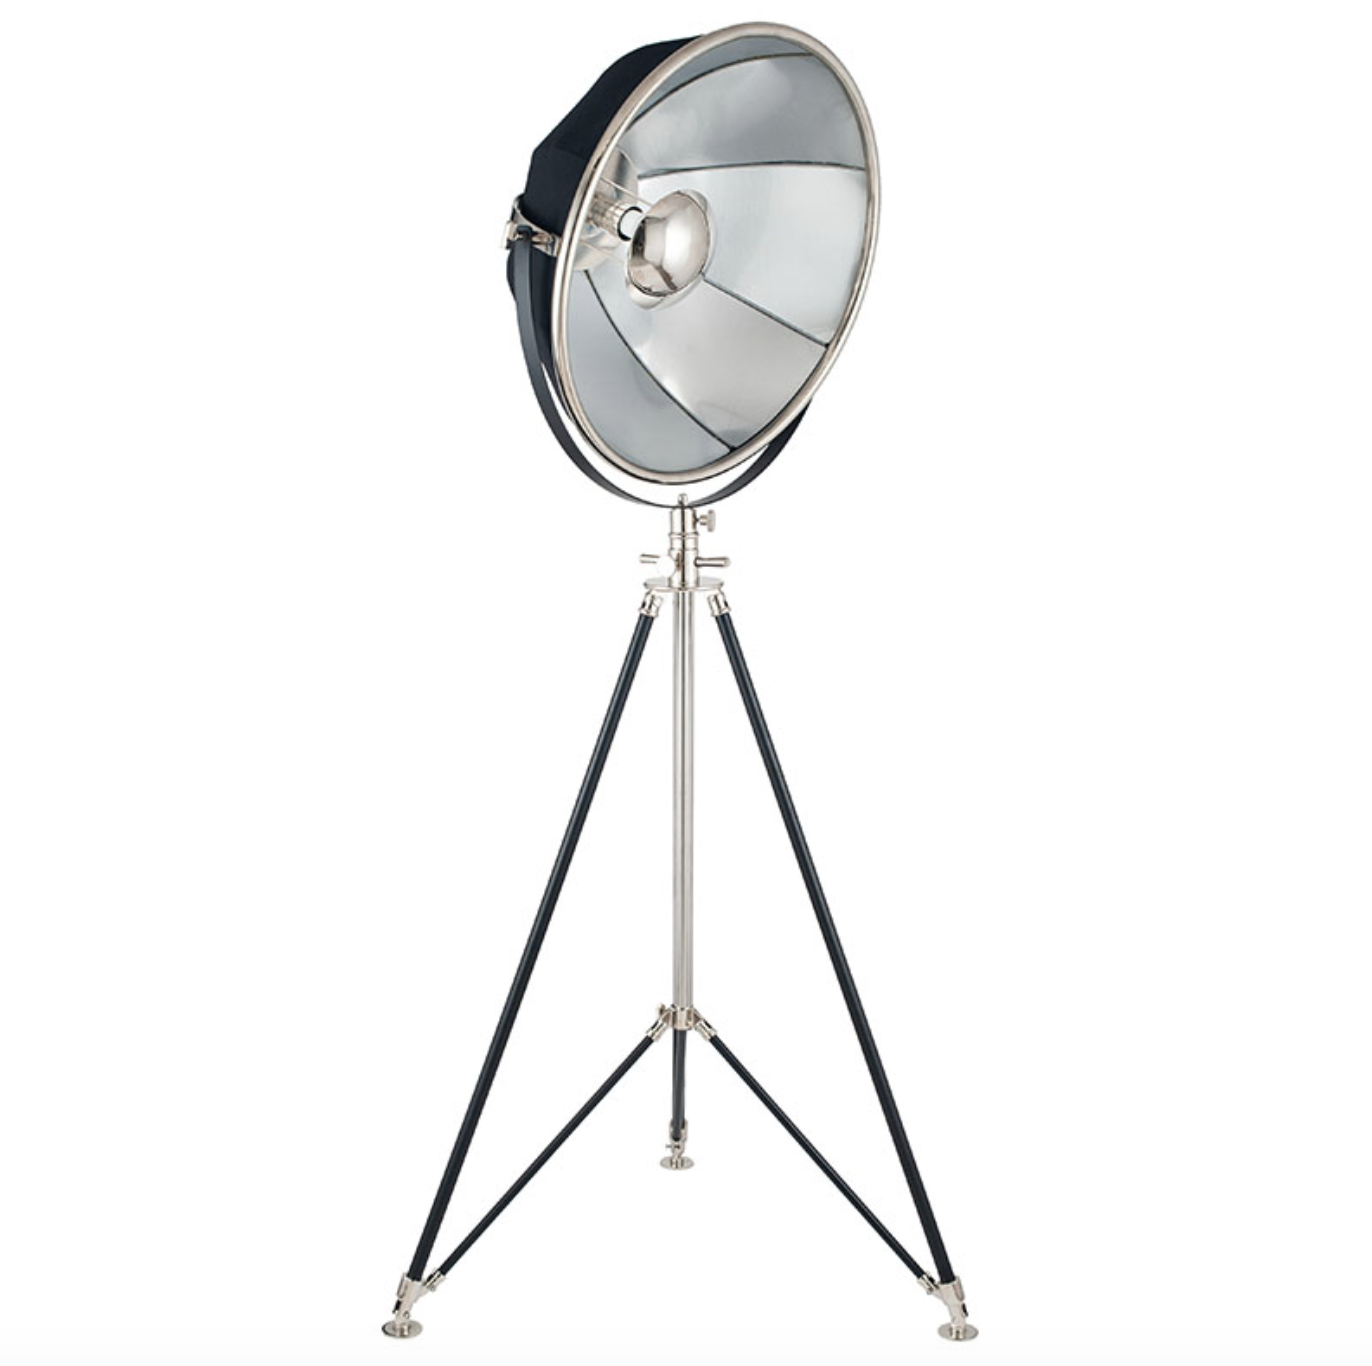 Black and Silver Theatre Tripod Floor Lamp - ID 10284